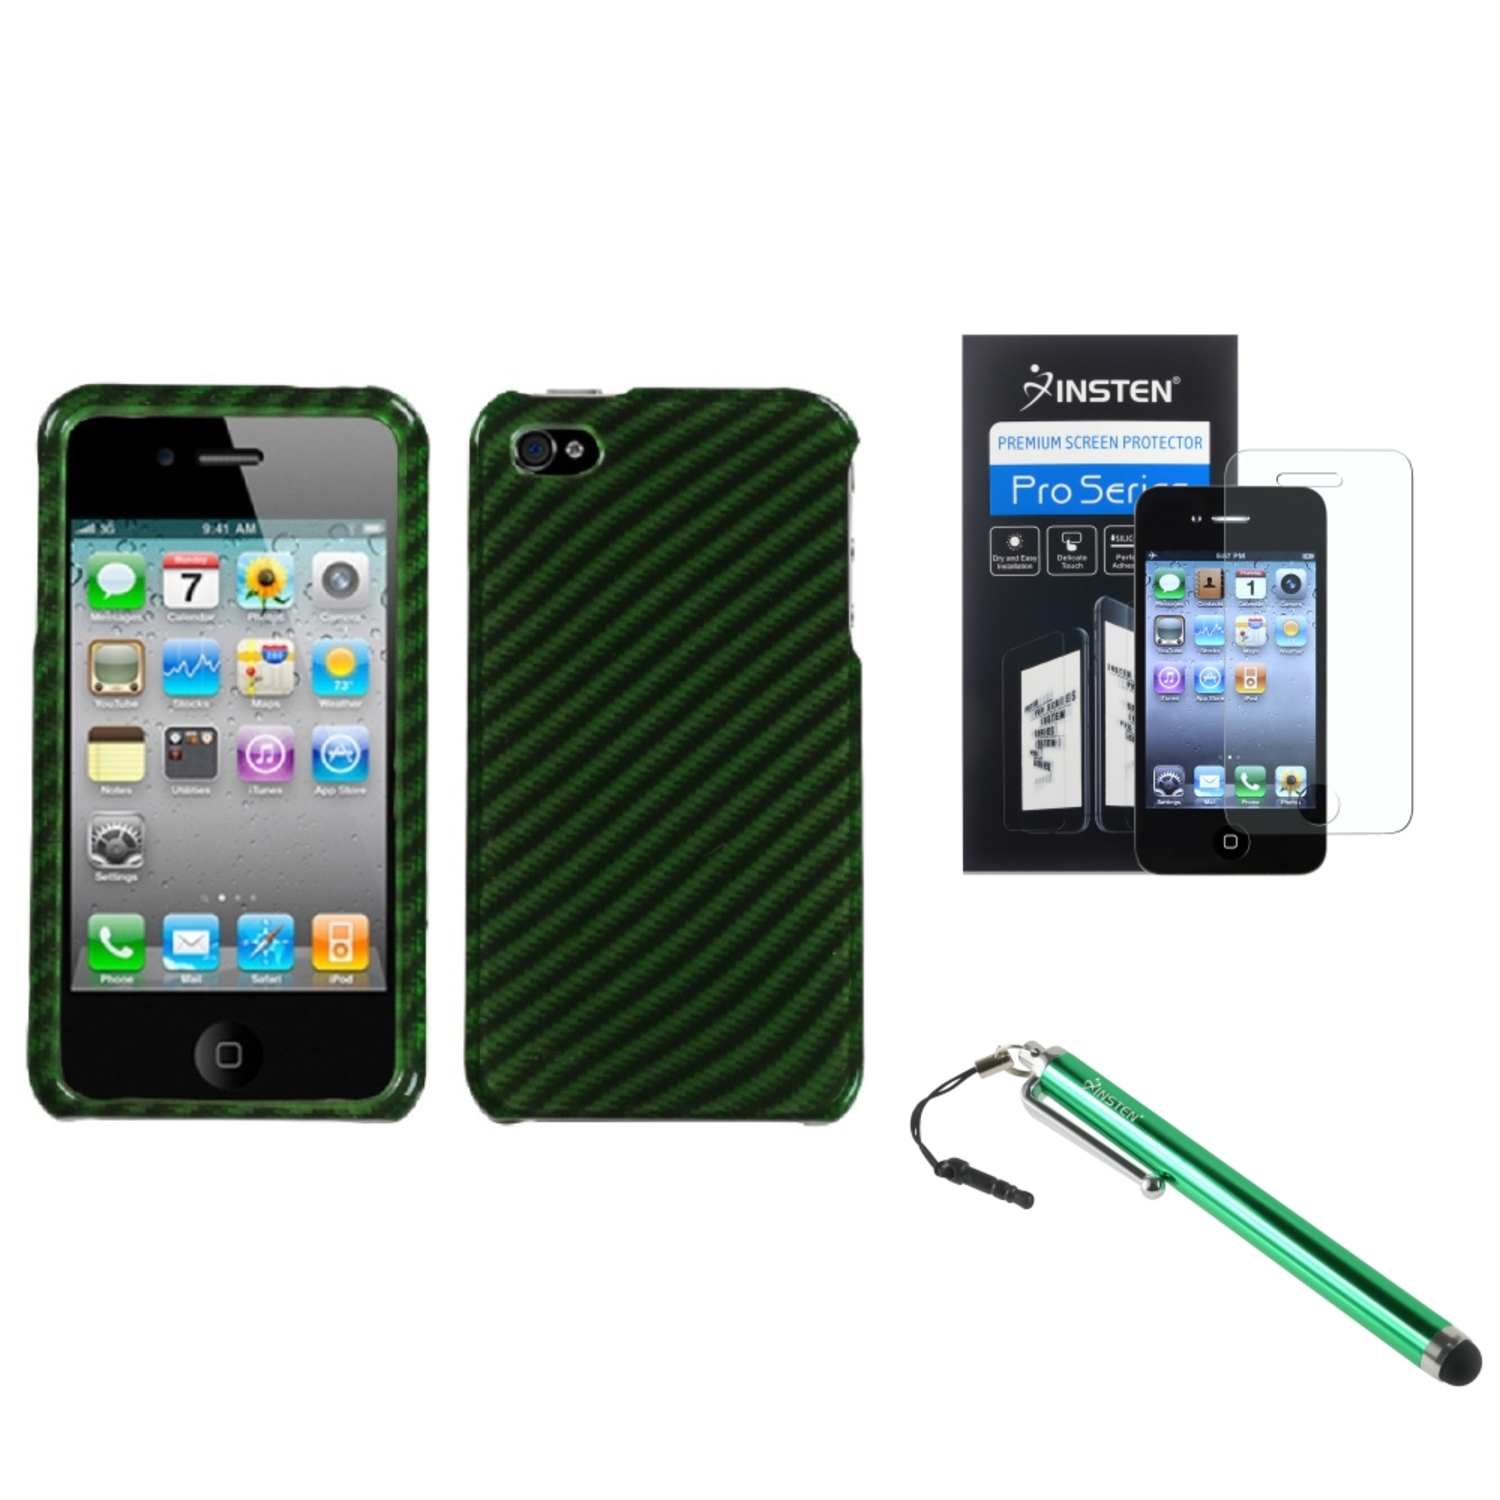 Insten Racing Fiber/Dr Green (2D Silver) Phone Case For iPhone 4 4S + Stylus + LCD Film